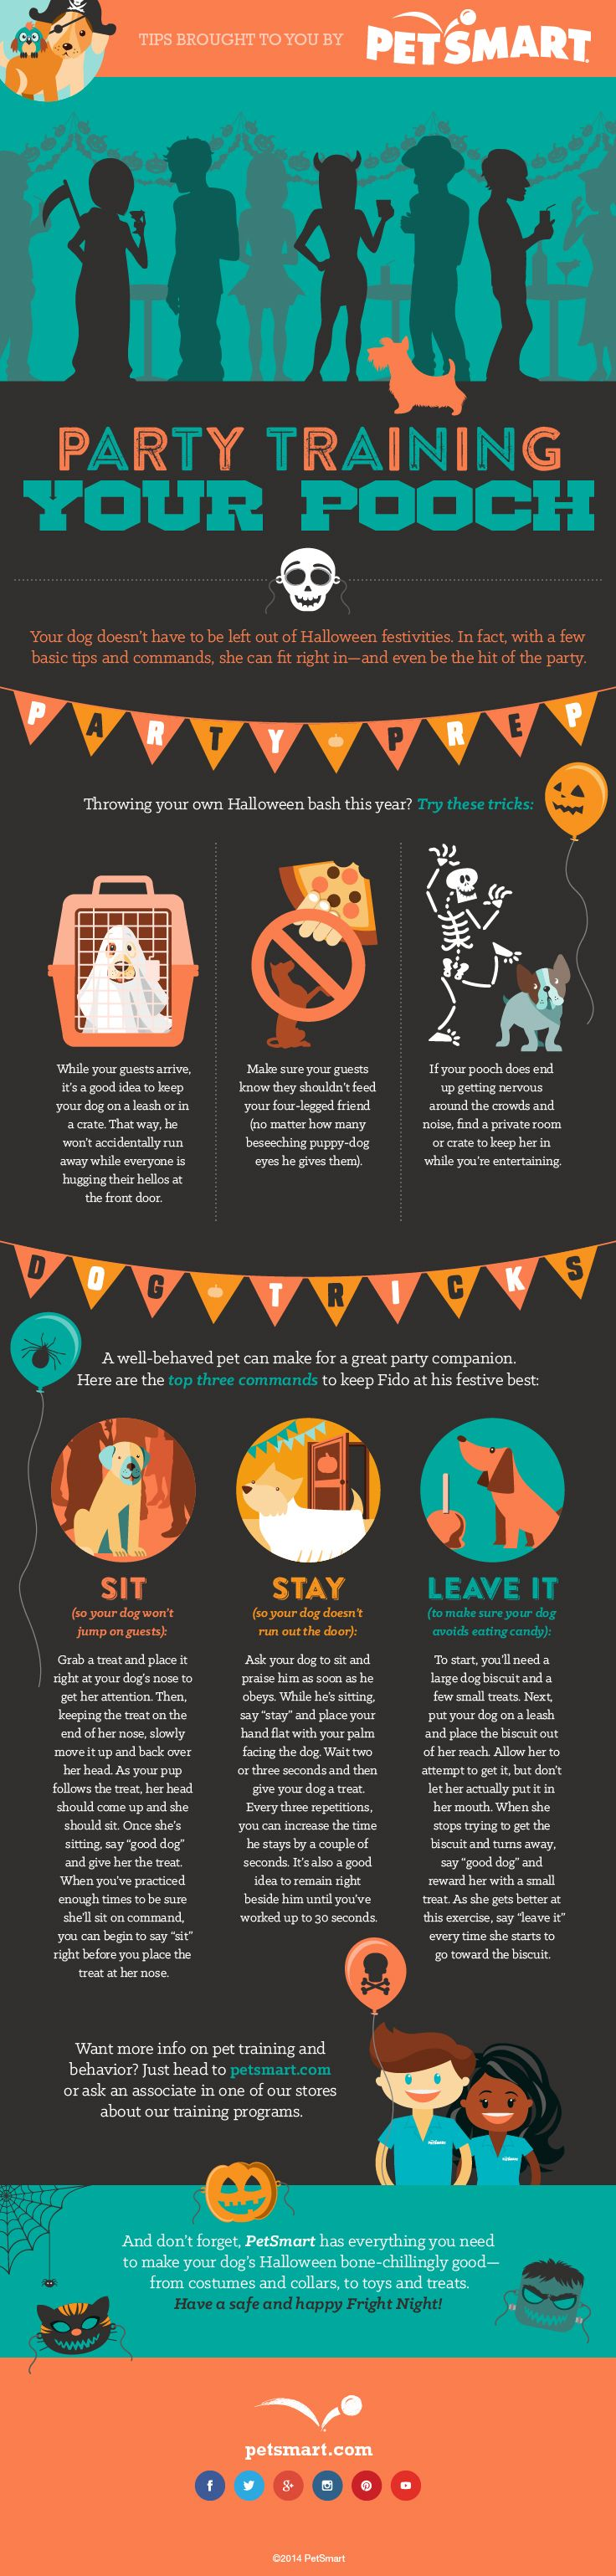 Throwing a #Halloween party? Here are some helpful steps to party ...